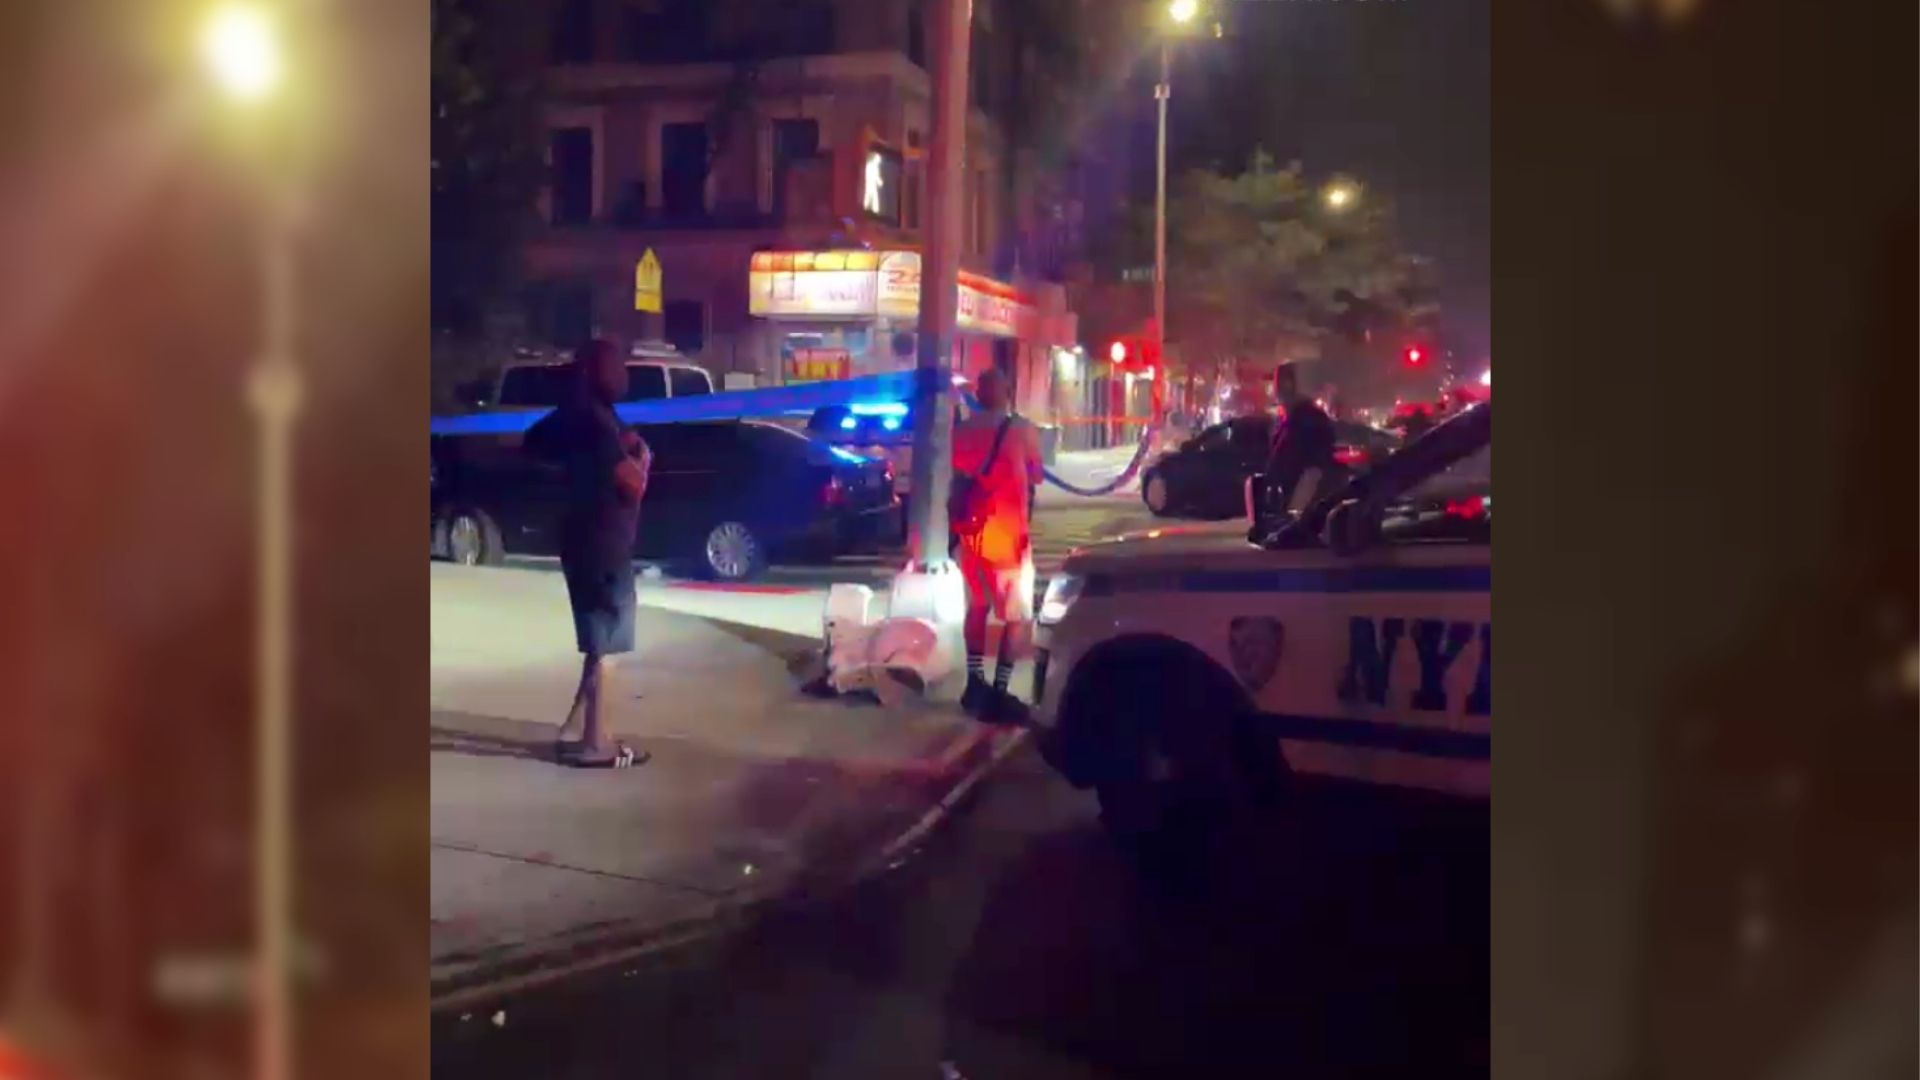 19-year-old shot and killed on Harlem street